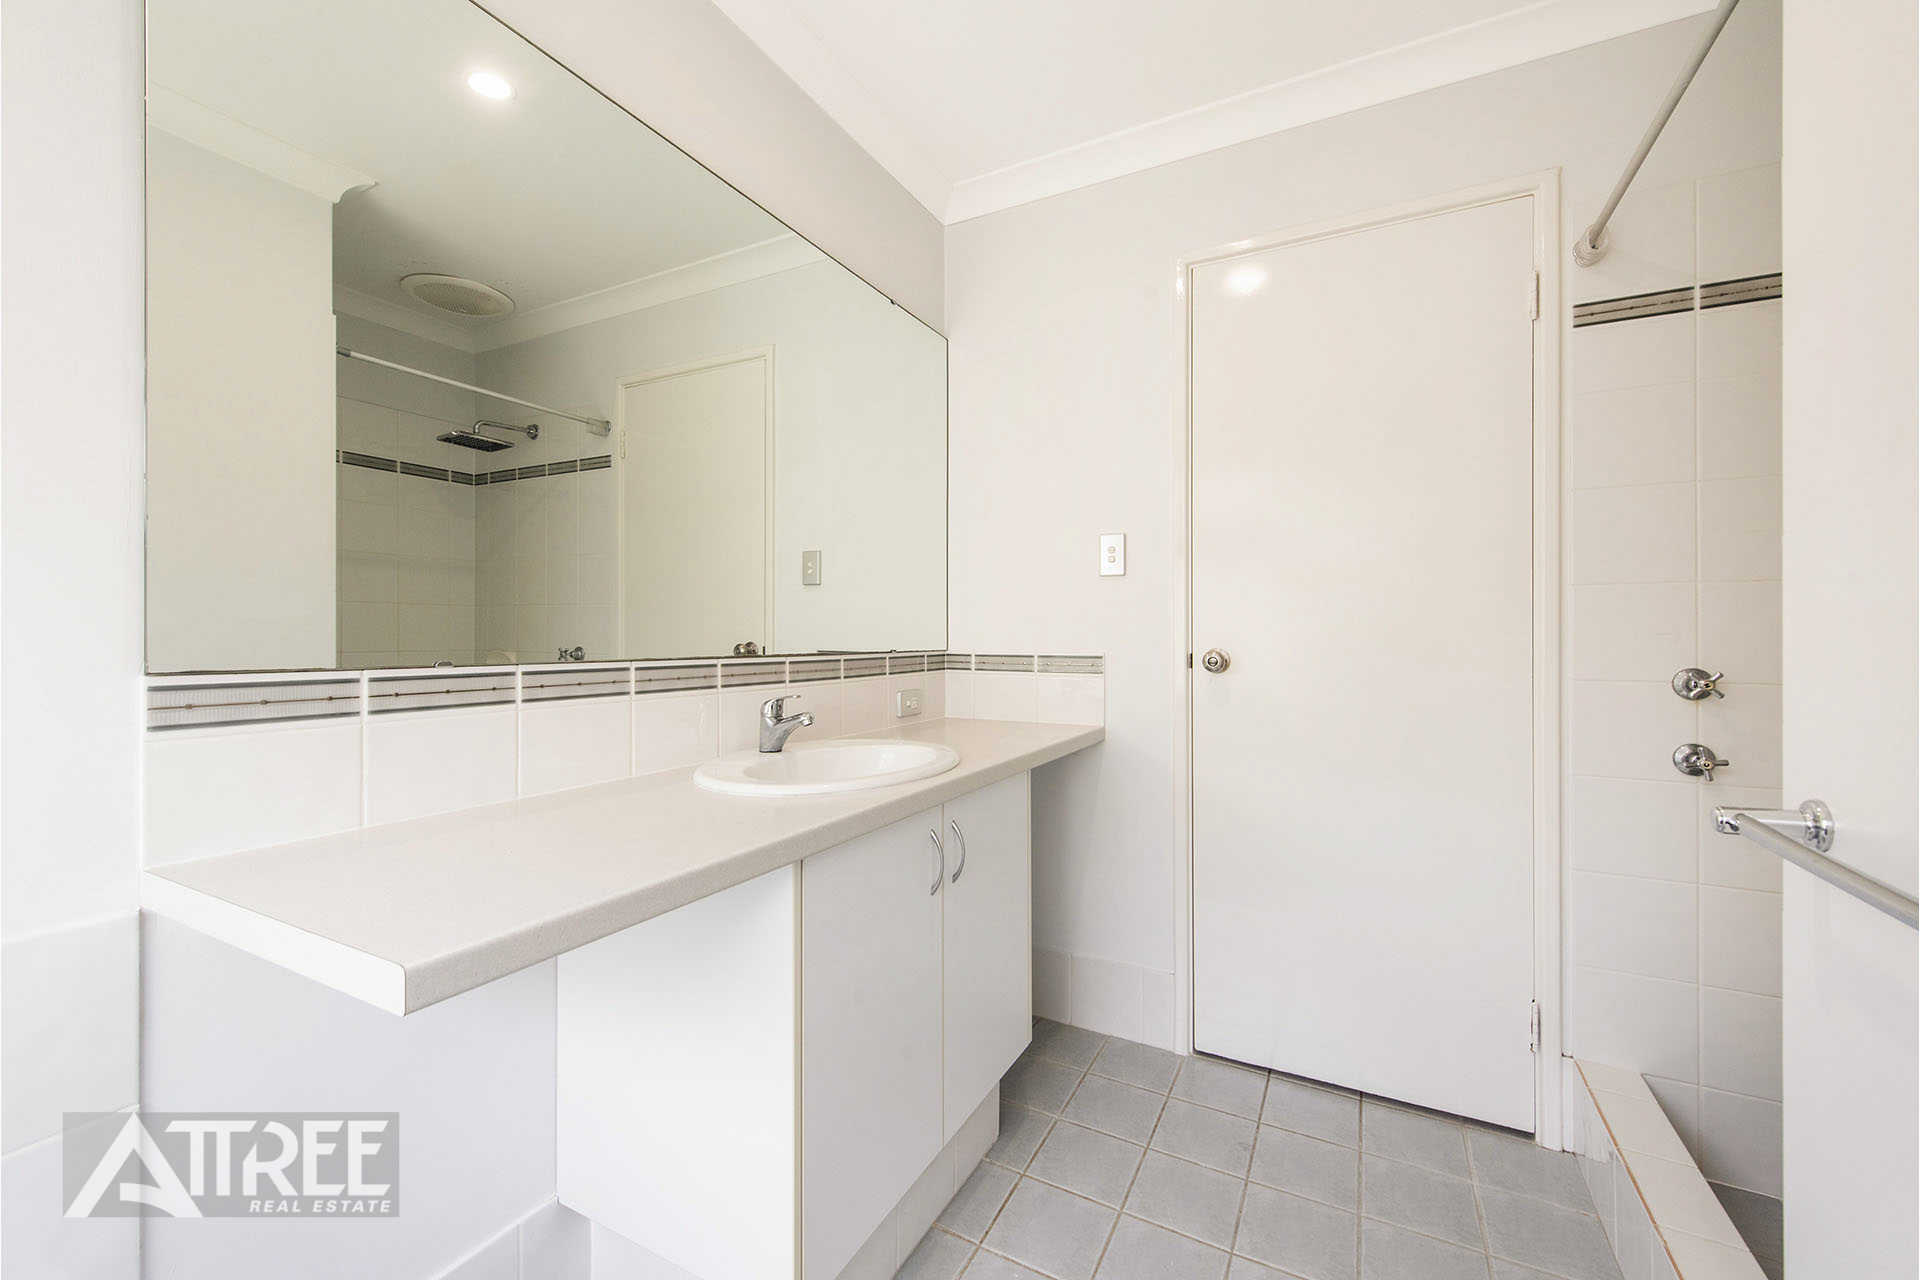 Property for sale in PIARA WATERS, 376 Wright Road : Attree Real Estate